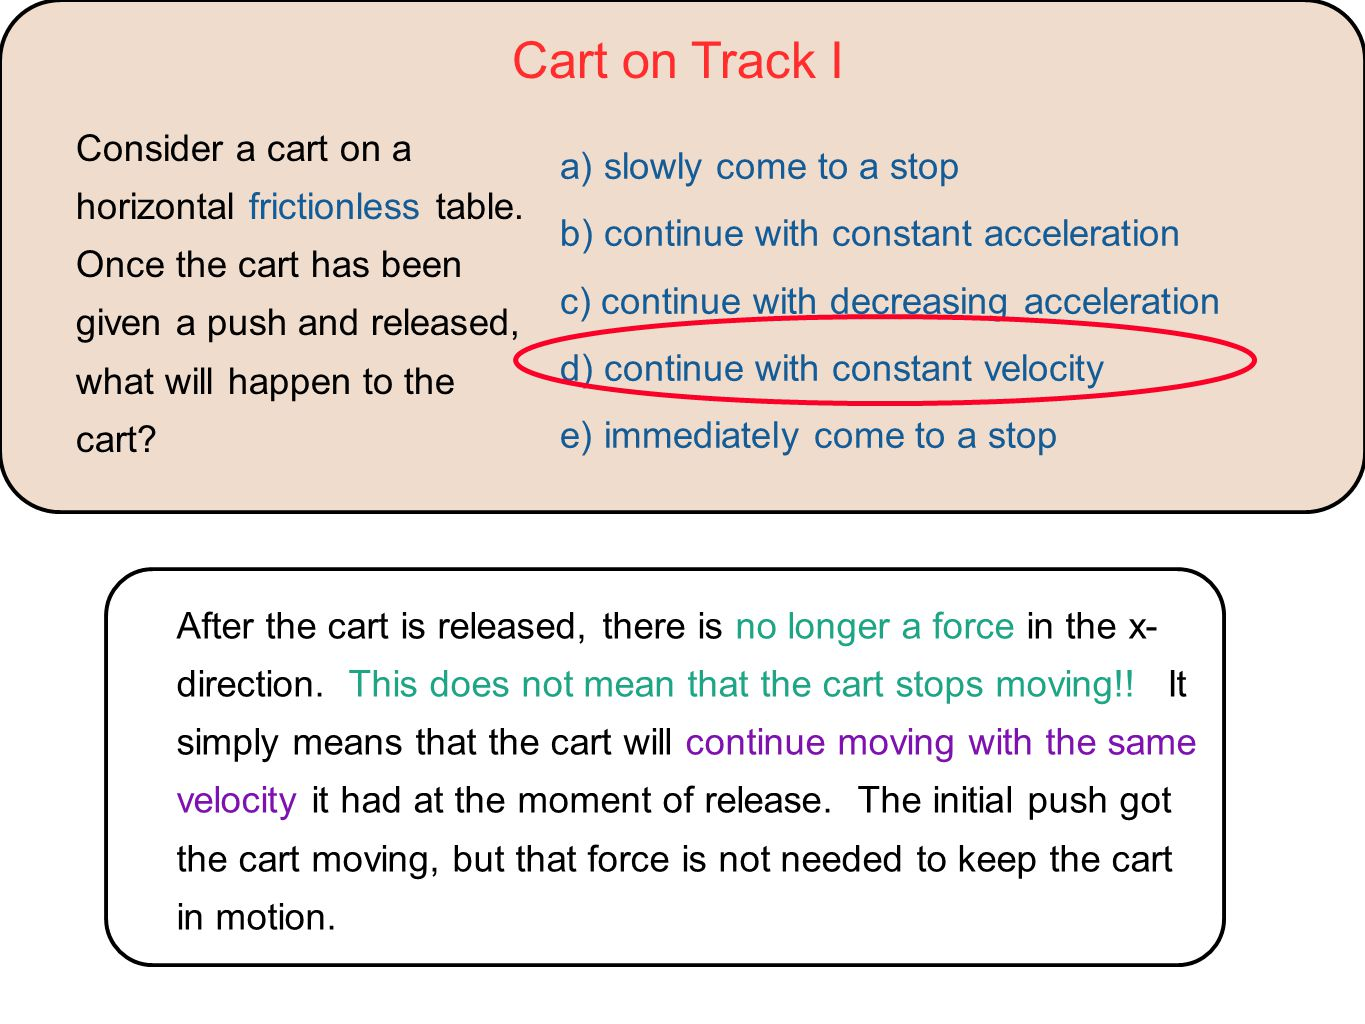 Cart on Track I a) slowly come to a stop b) continue with constant acceleration c) continue with decreasing acceleration d) continue with constant velocity e) immediately come to a stop Consider a cart on a horizontal frictionless table.